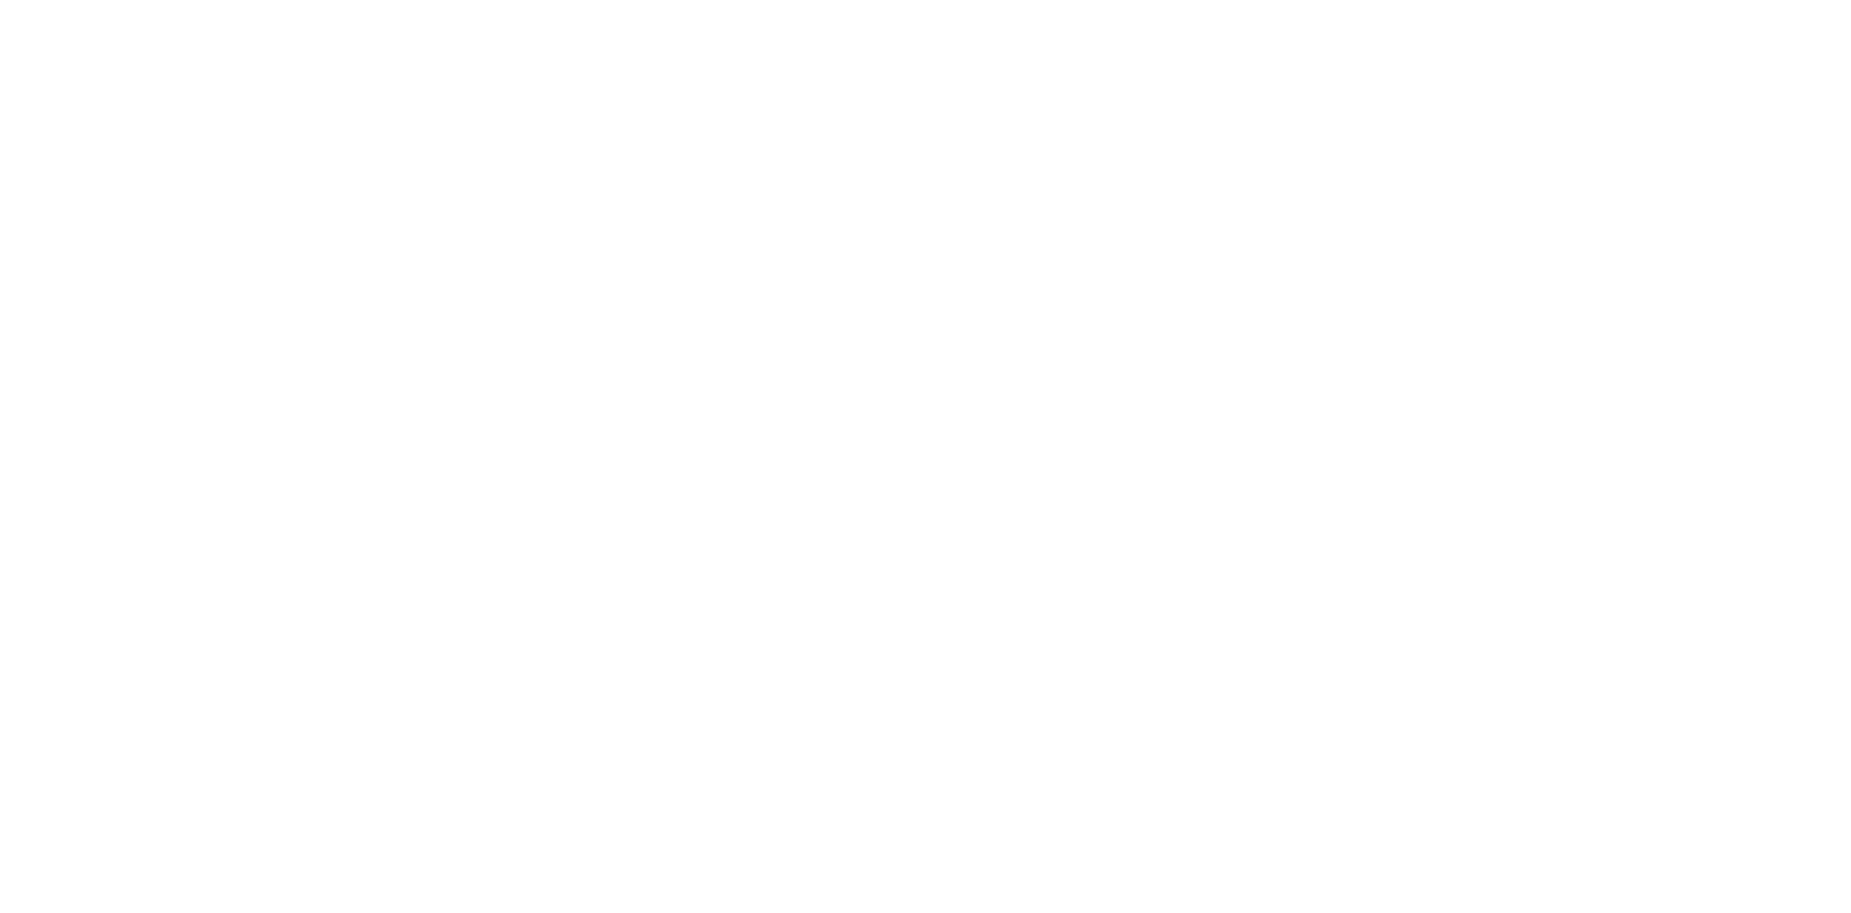 MIXING.TODAY